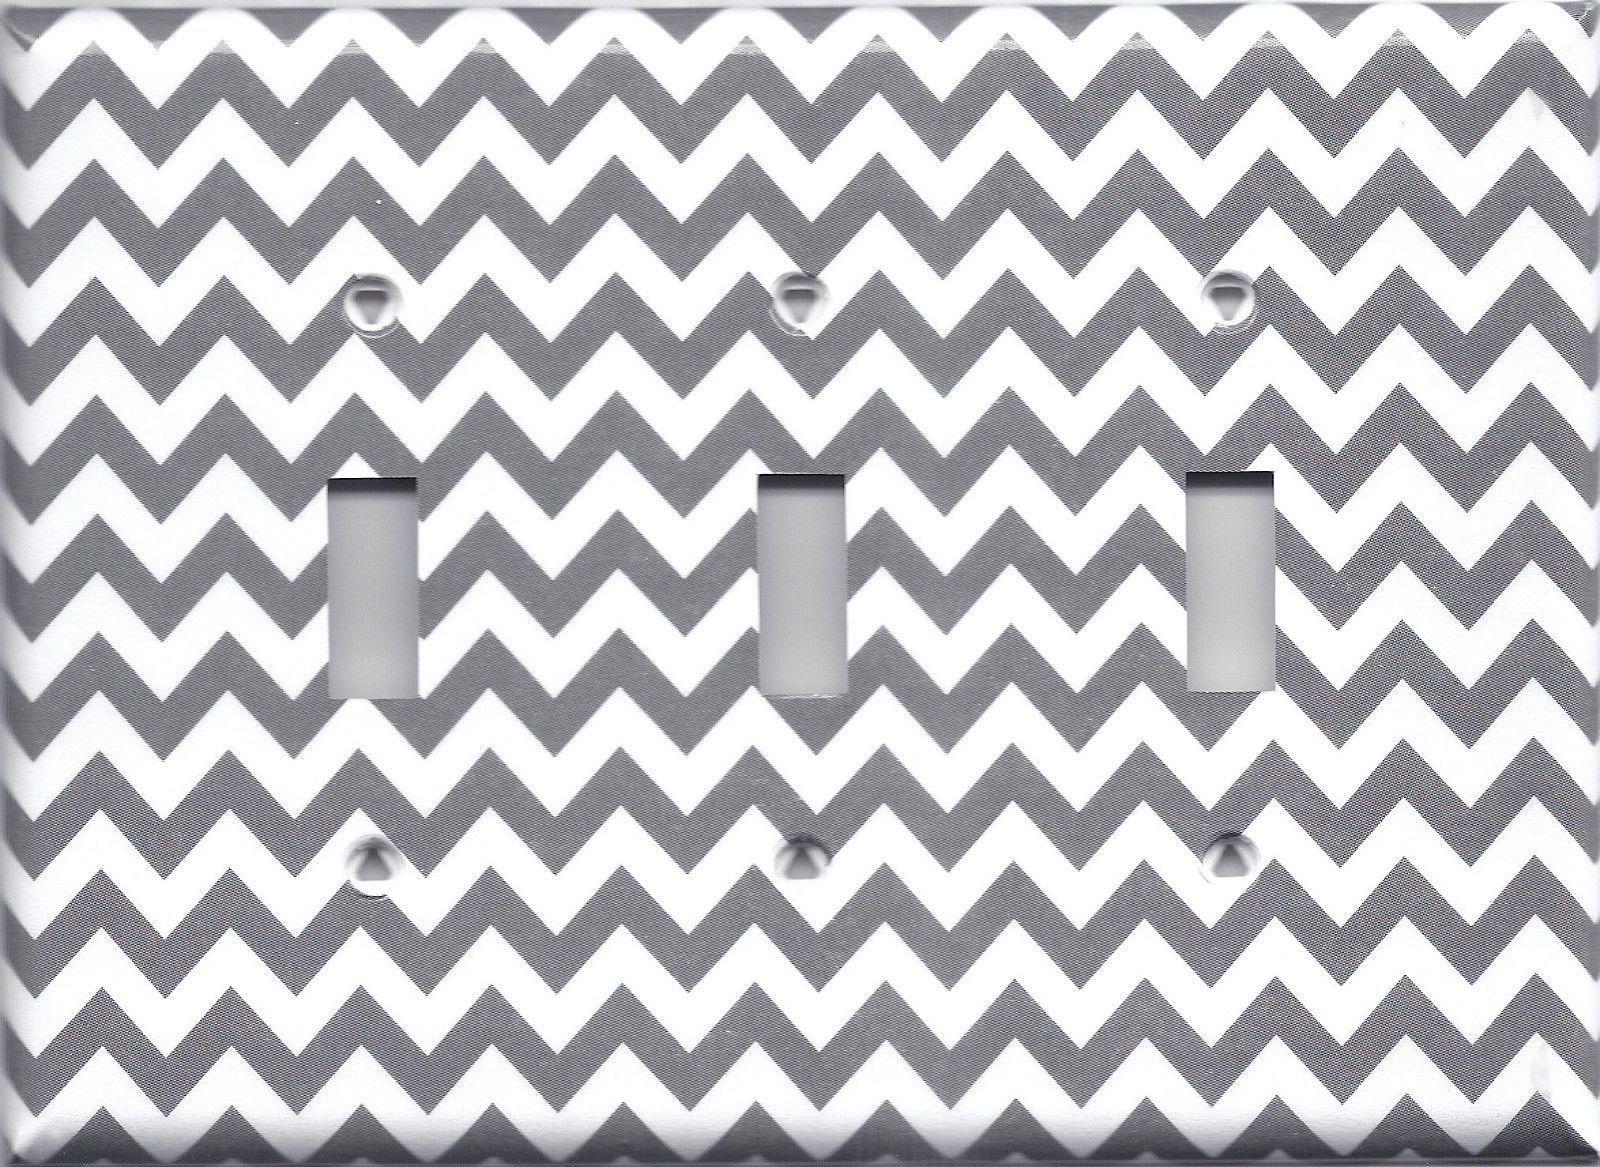 Silver/Grey/Gray/Charcoal Chevron Zig Zag Print Switch Plates & Outlet Covers